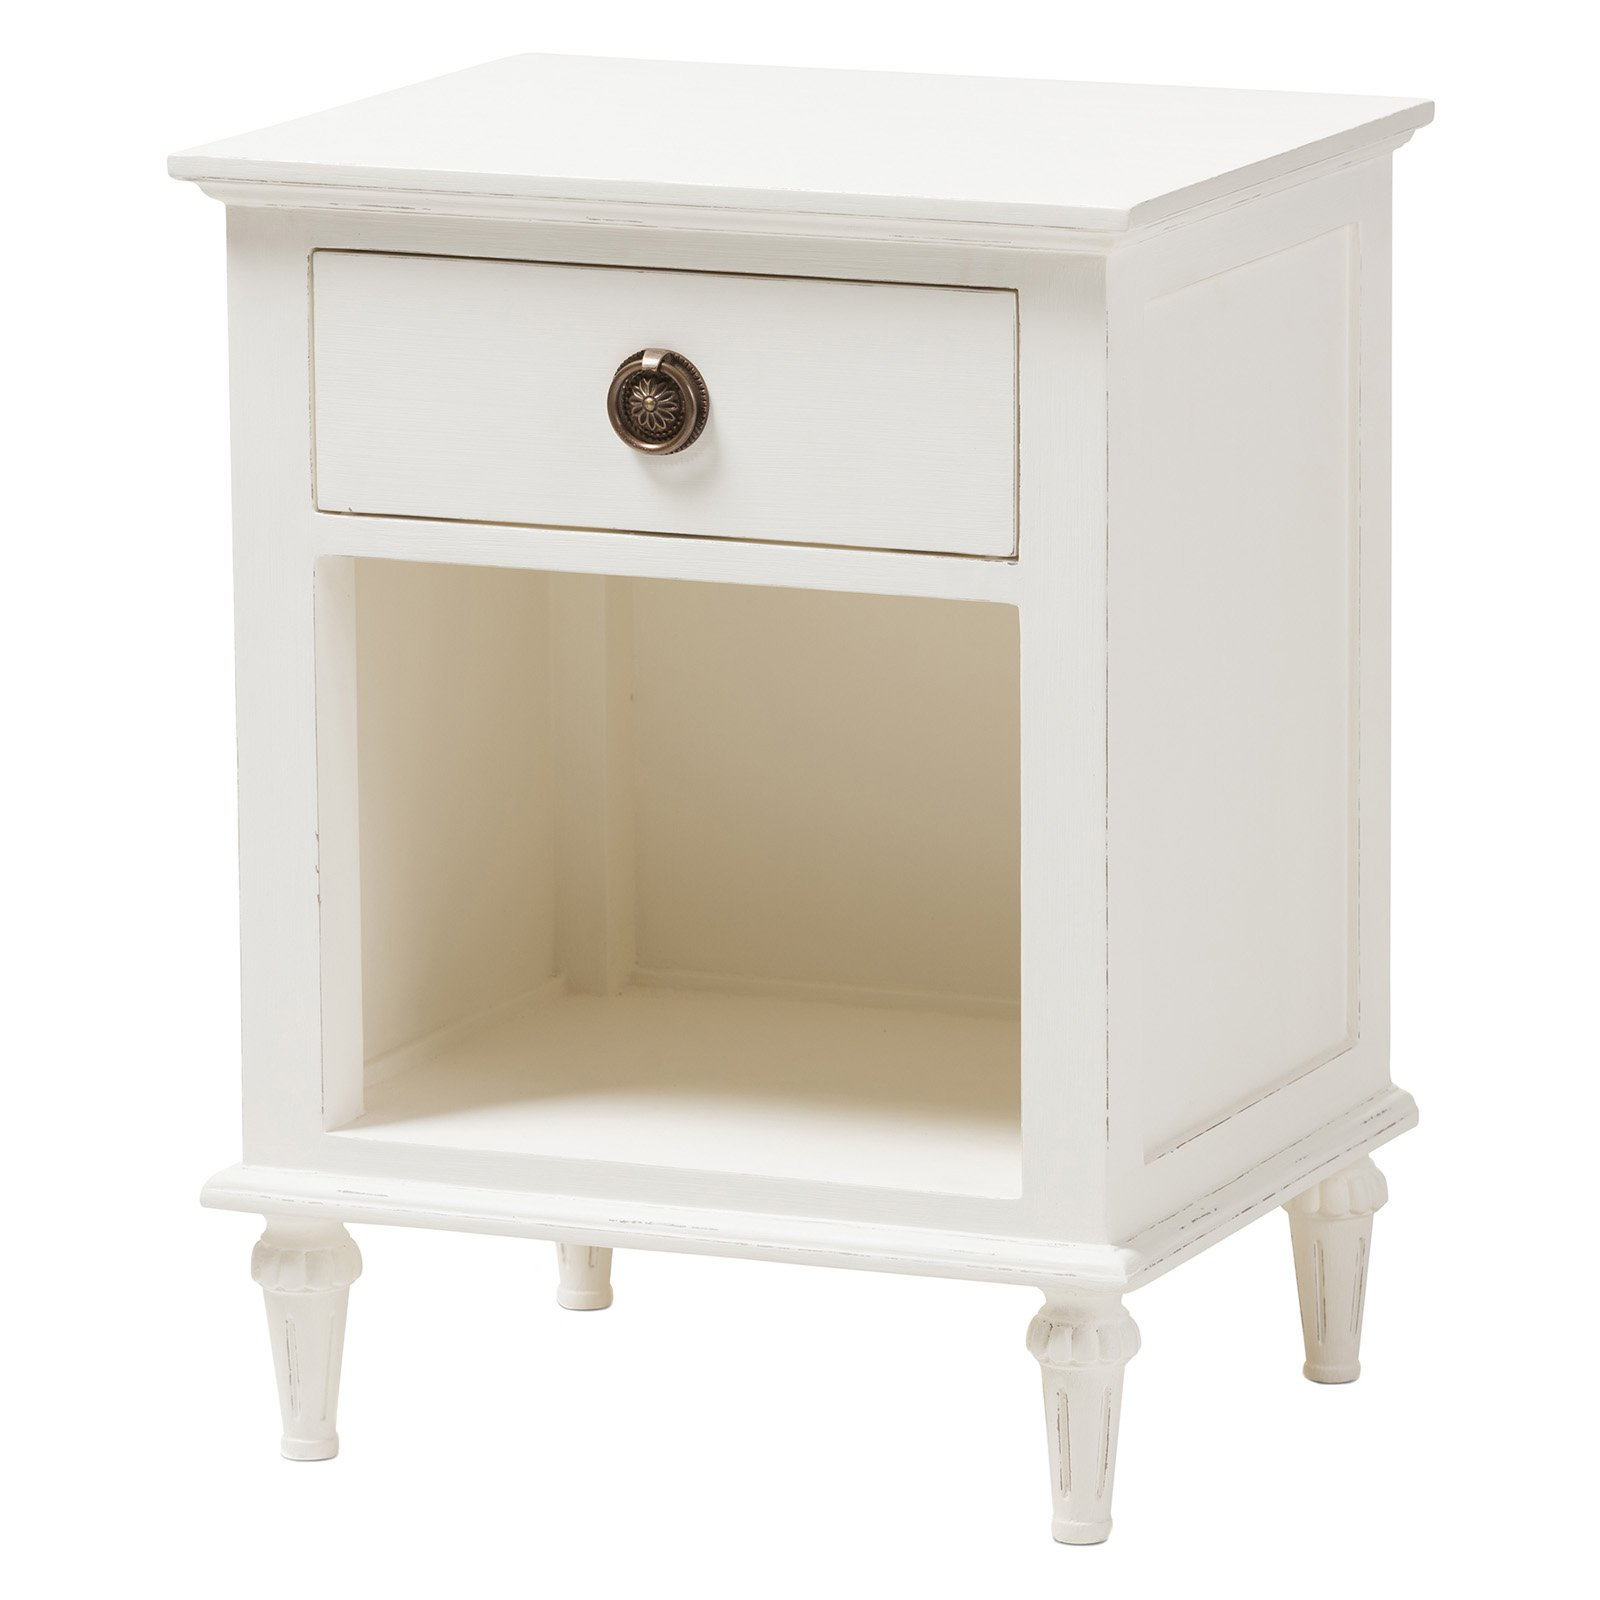 Venezia French - Inspired Rustic Washed Wood 3 - Drawer Nightstand - White - Baxton Studio